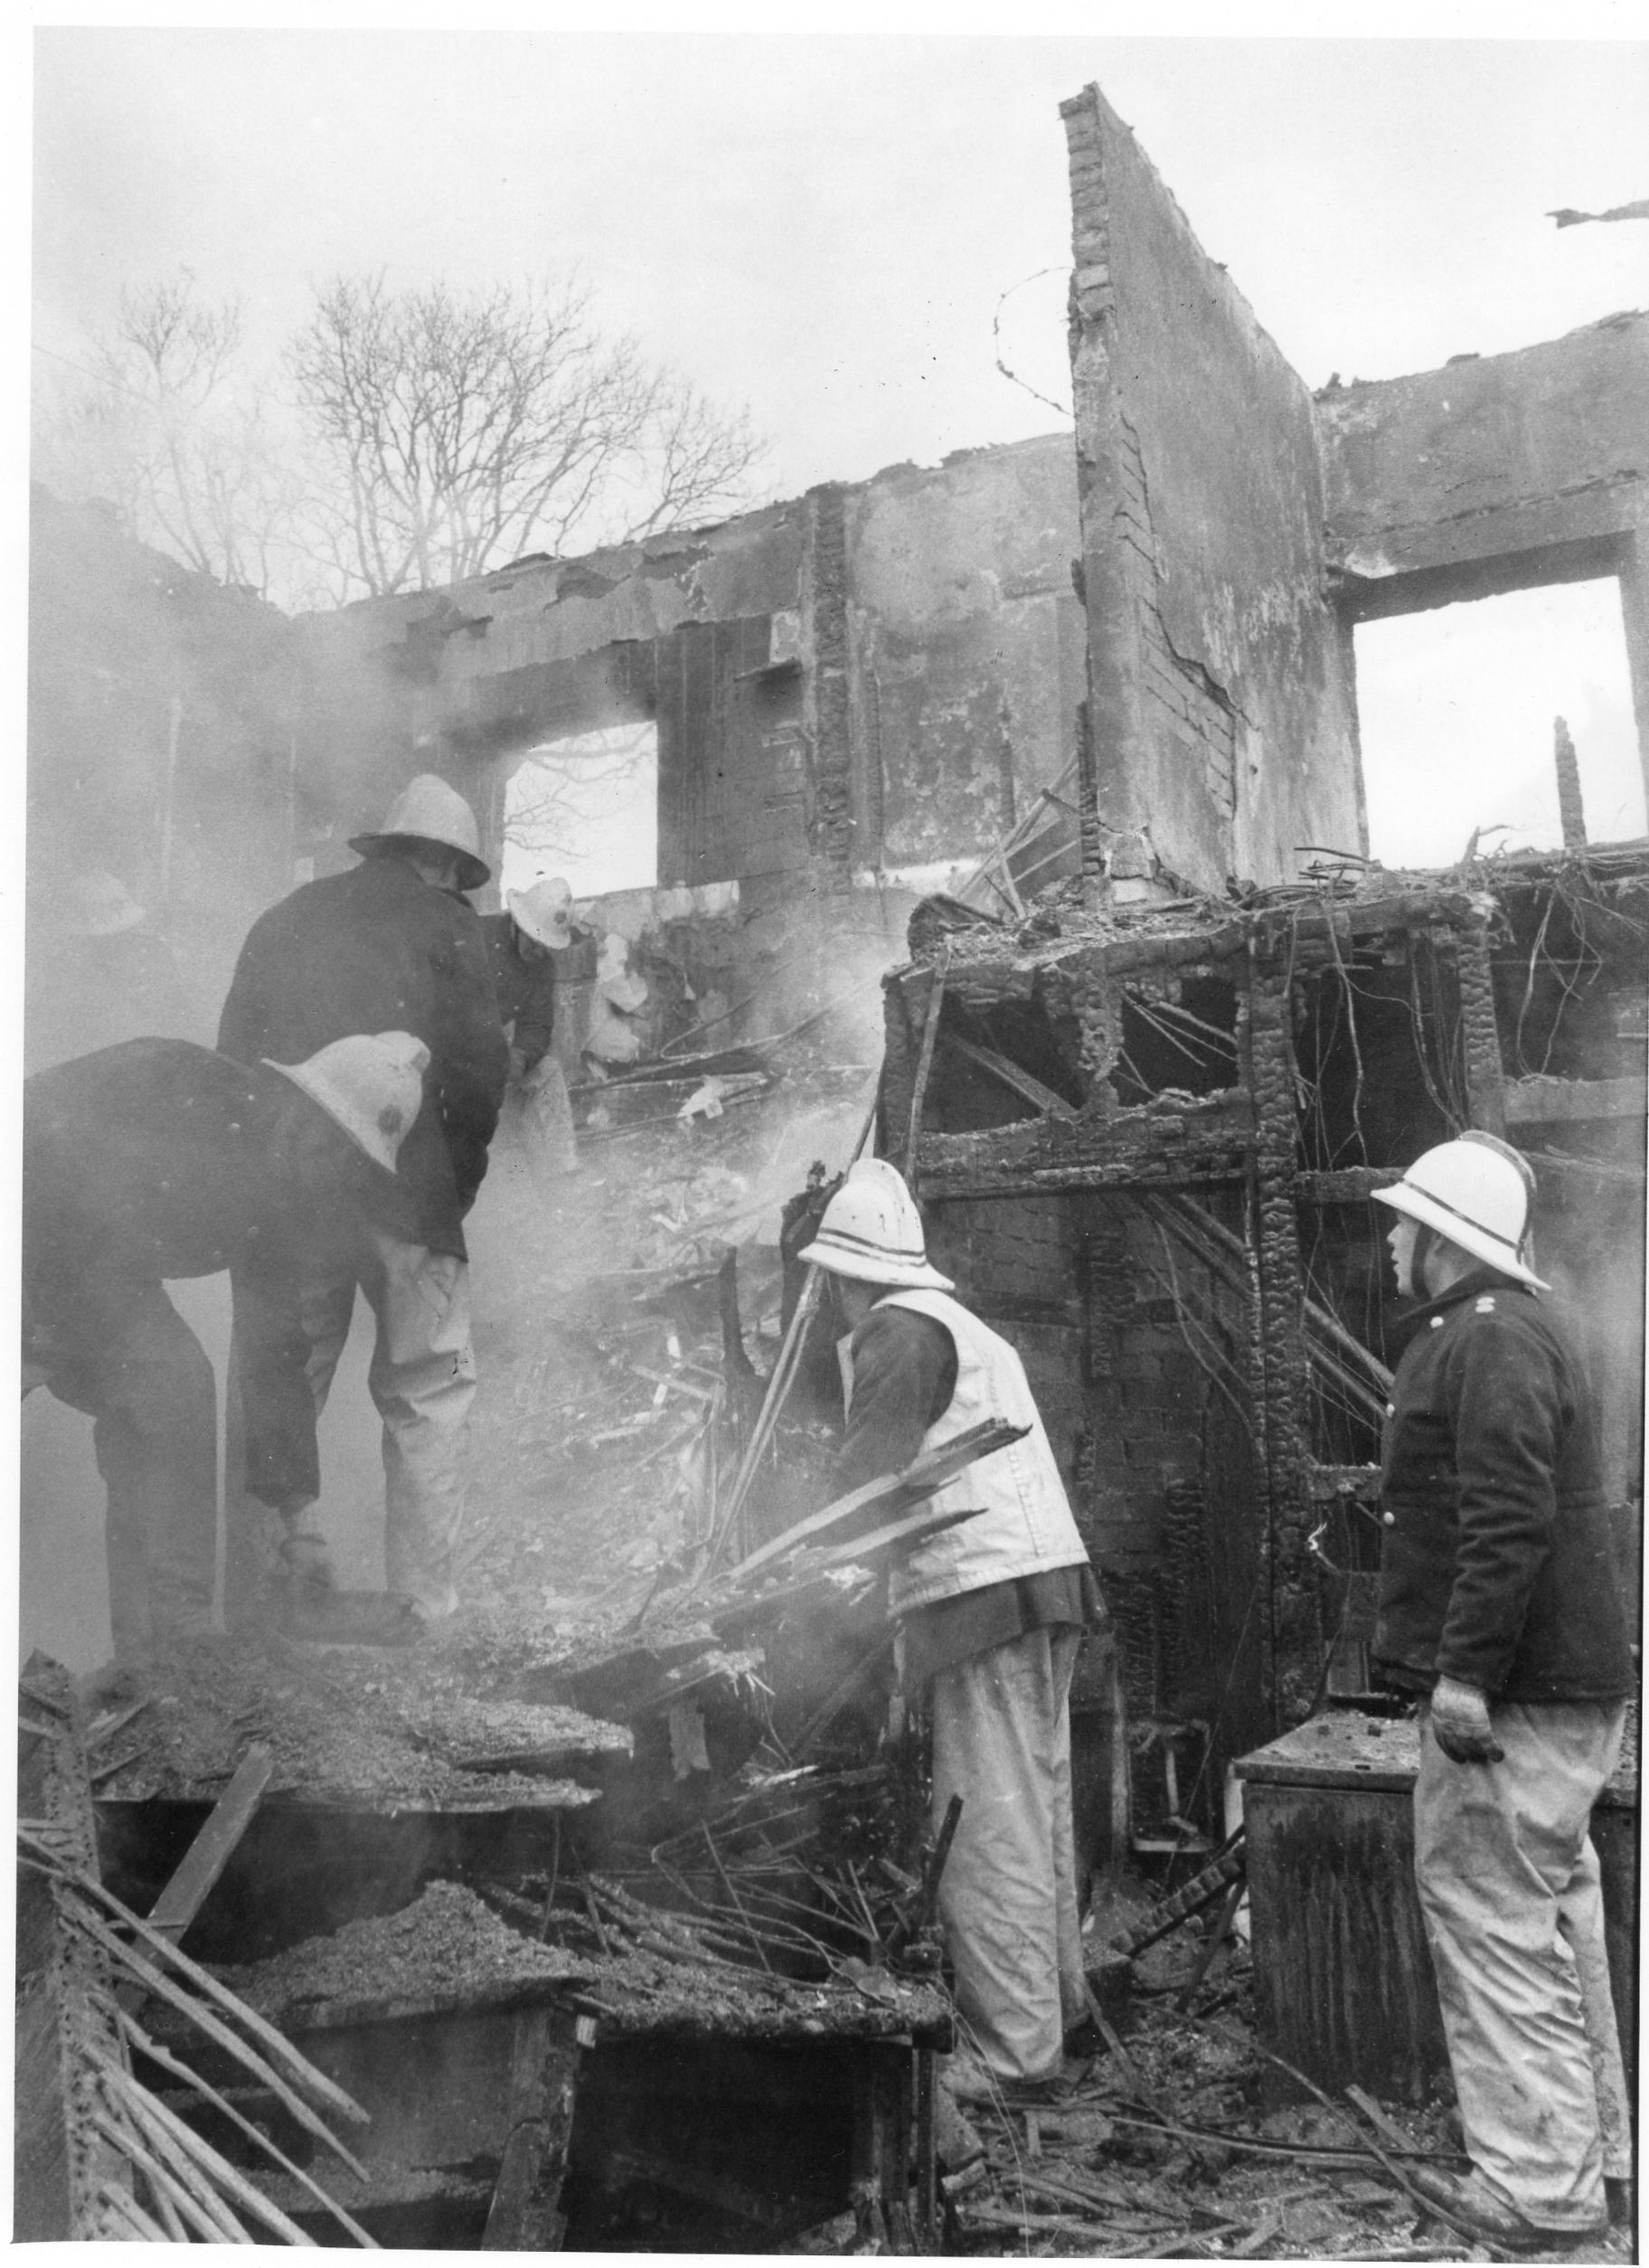 Fire Damage to the Coach House Motel, Lewdown, December 20th, 1981. Photo courtesy of Gary Chapman.